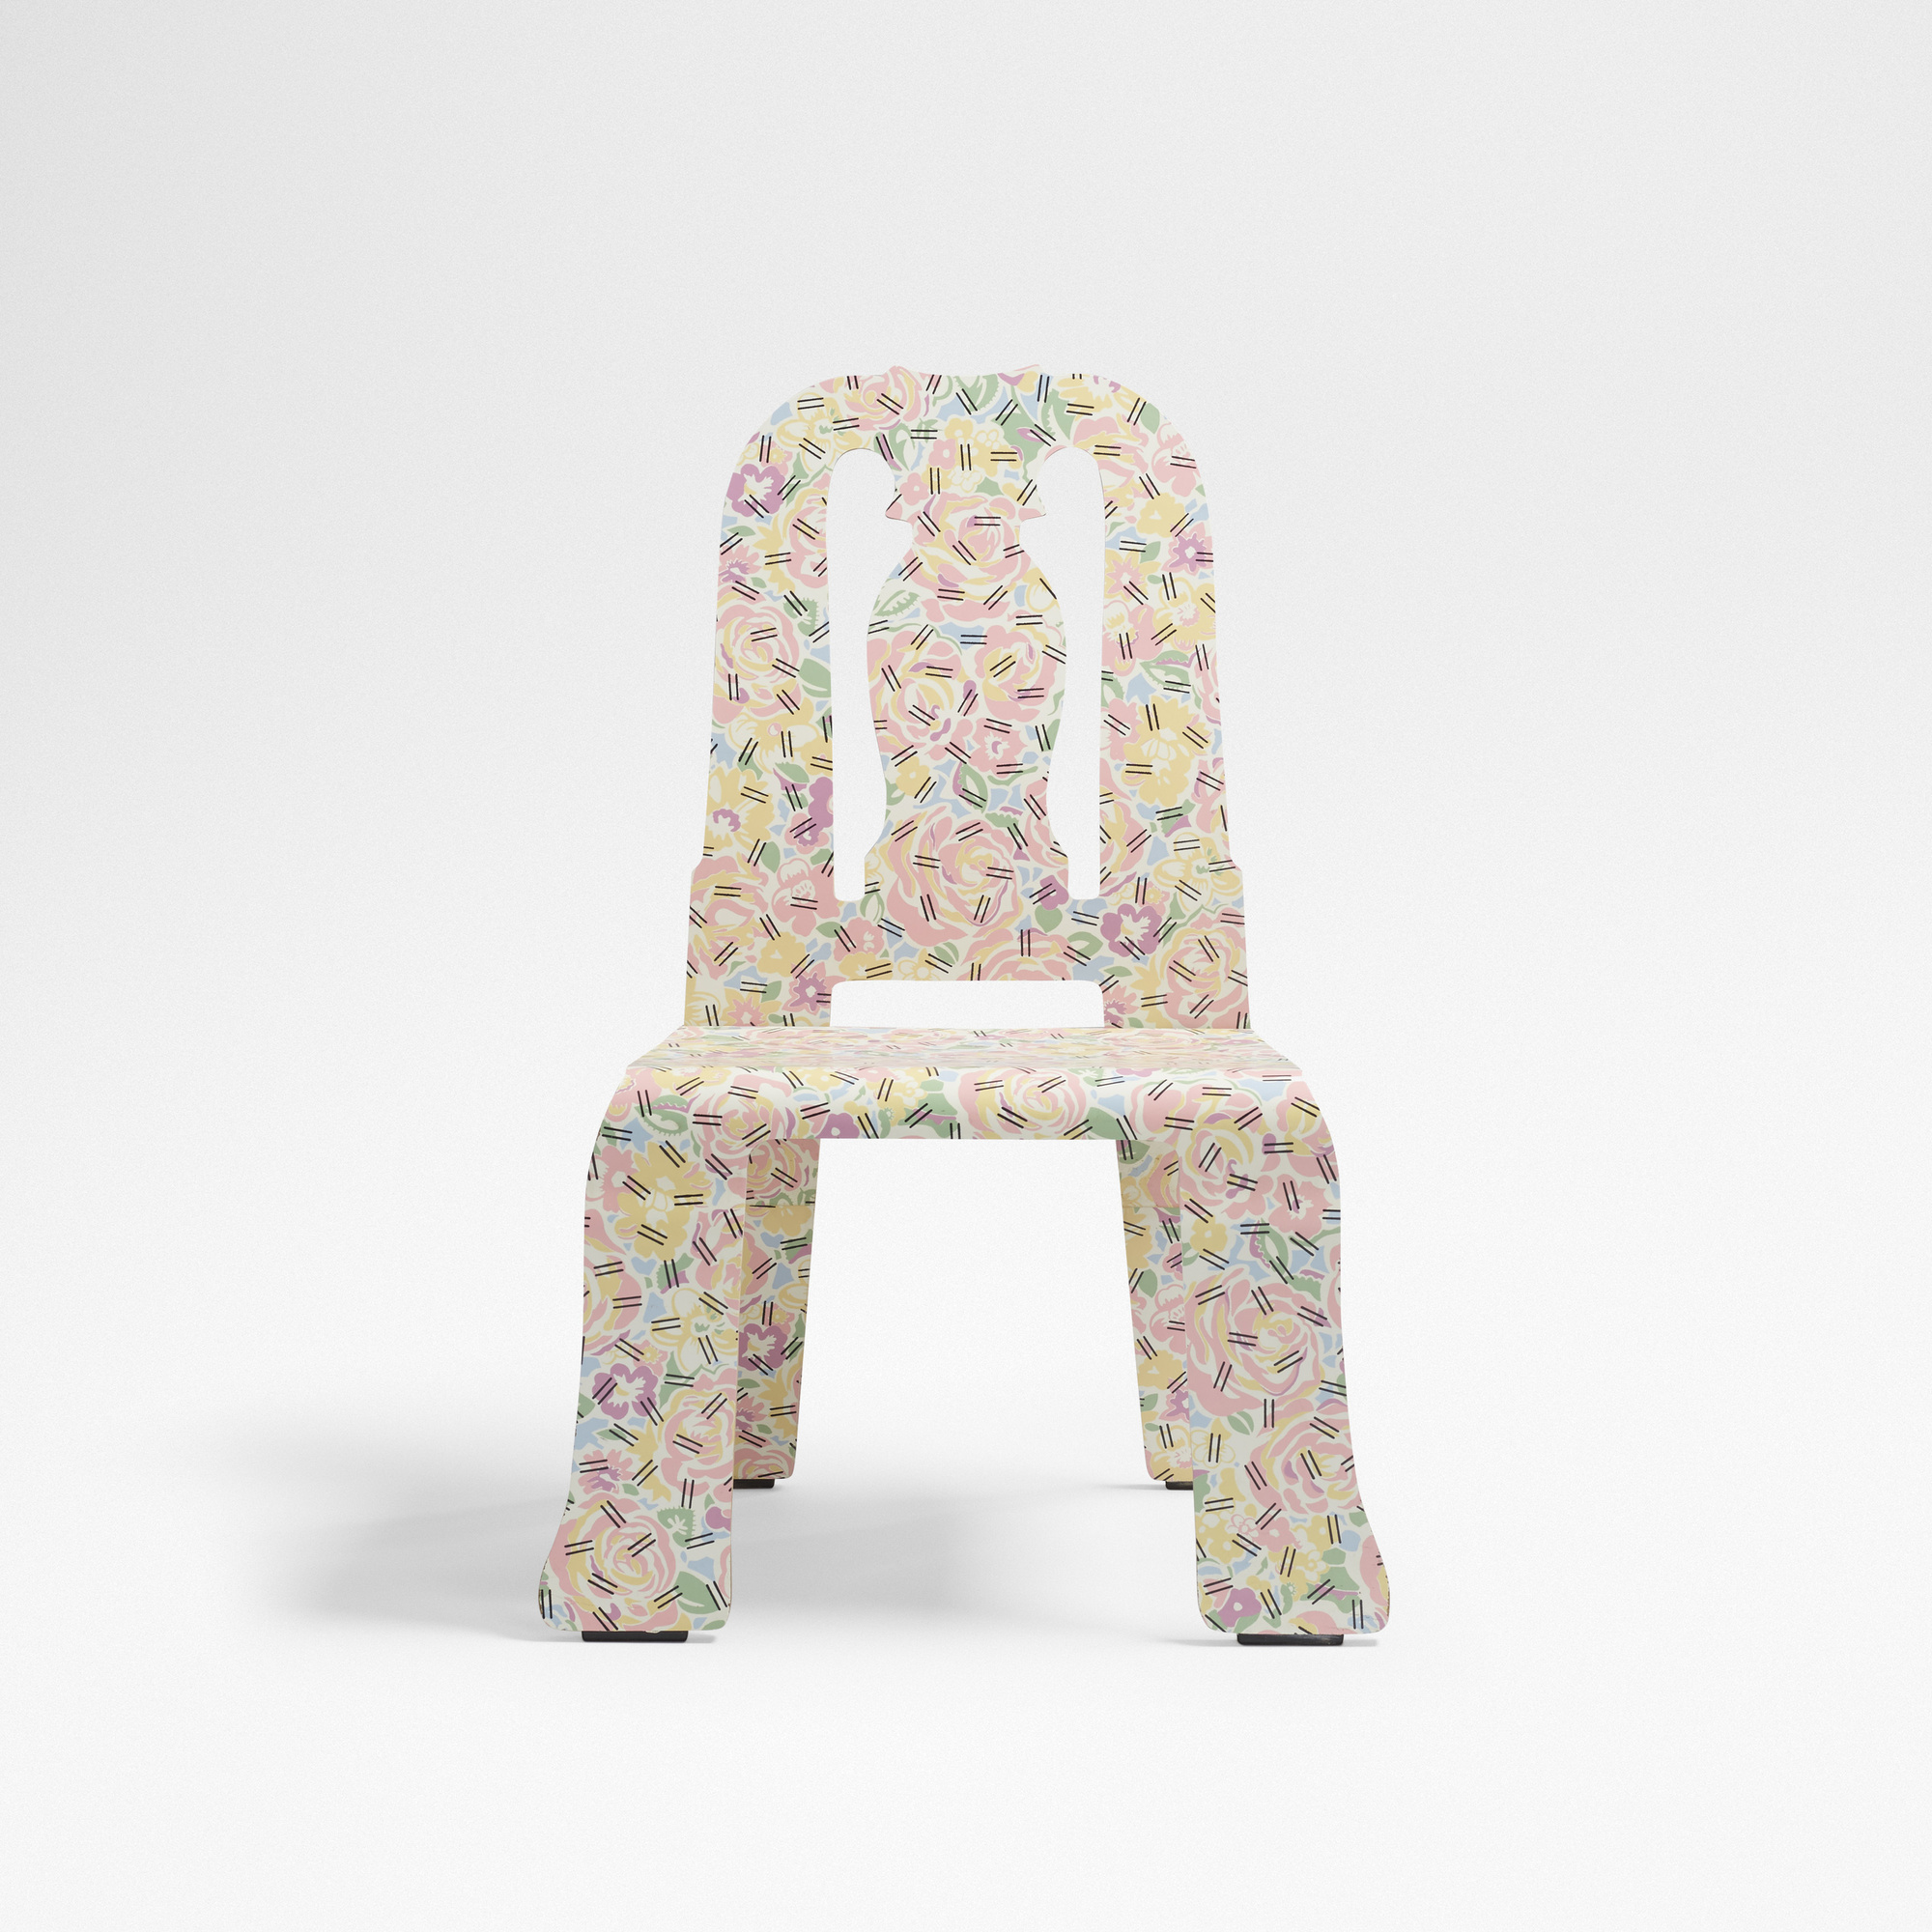 263 Robert Venturi With Denise Scott Brown Queen Anne Chair